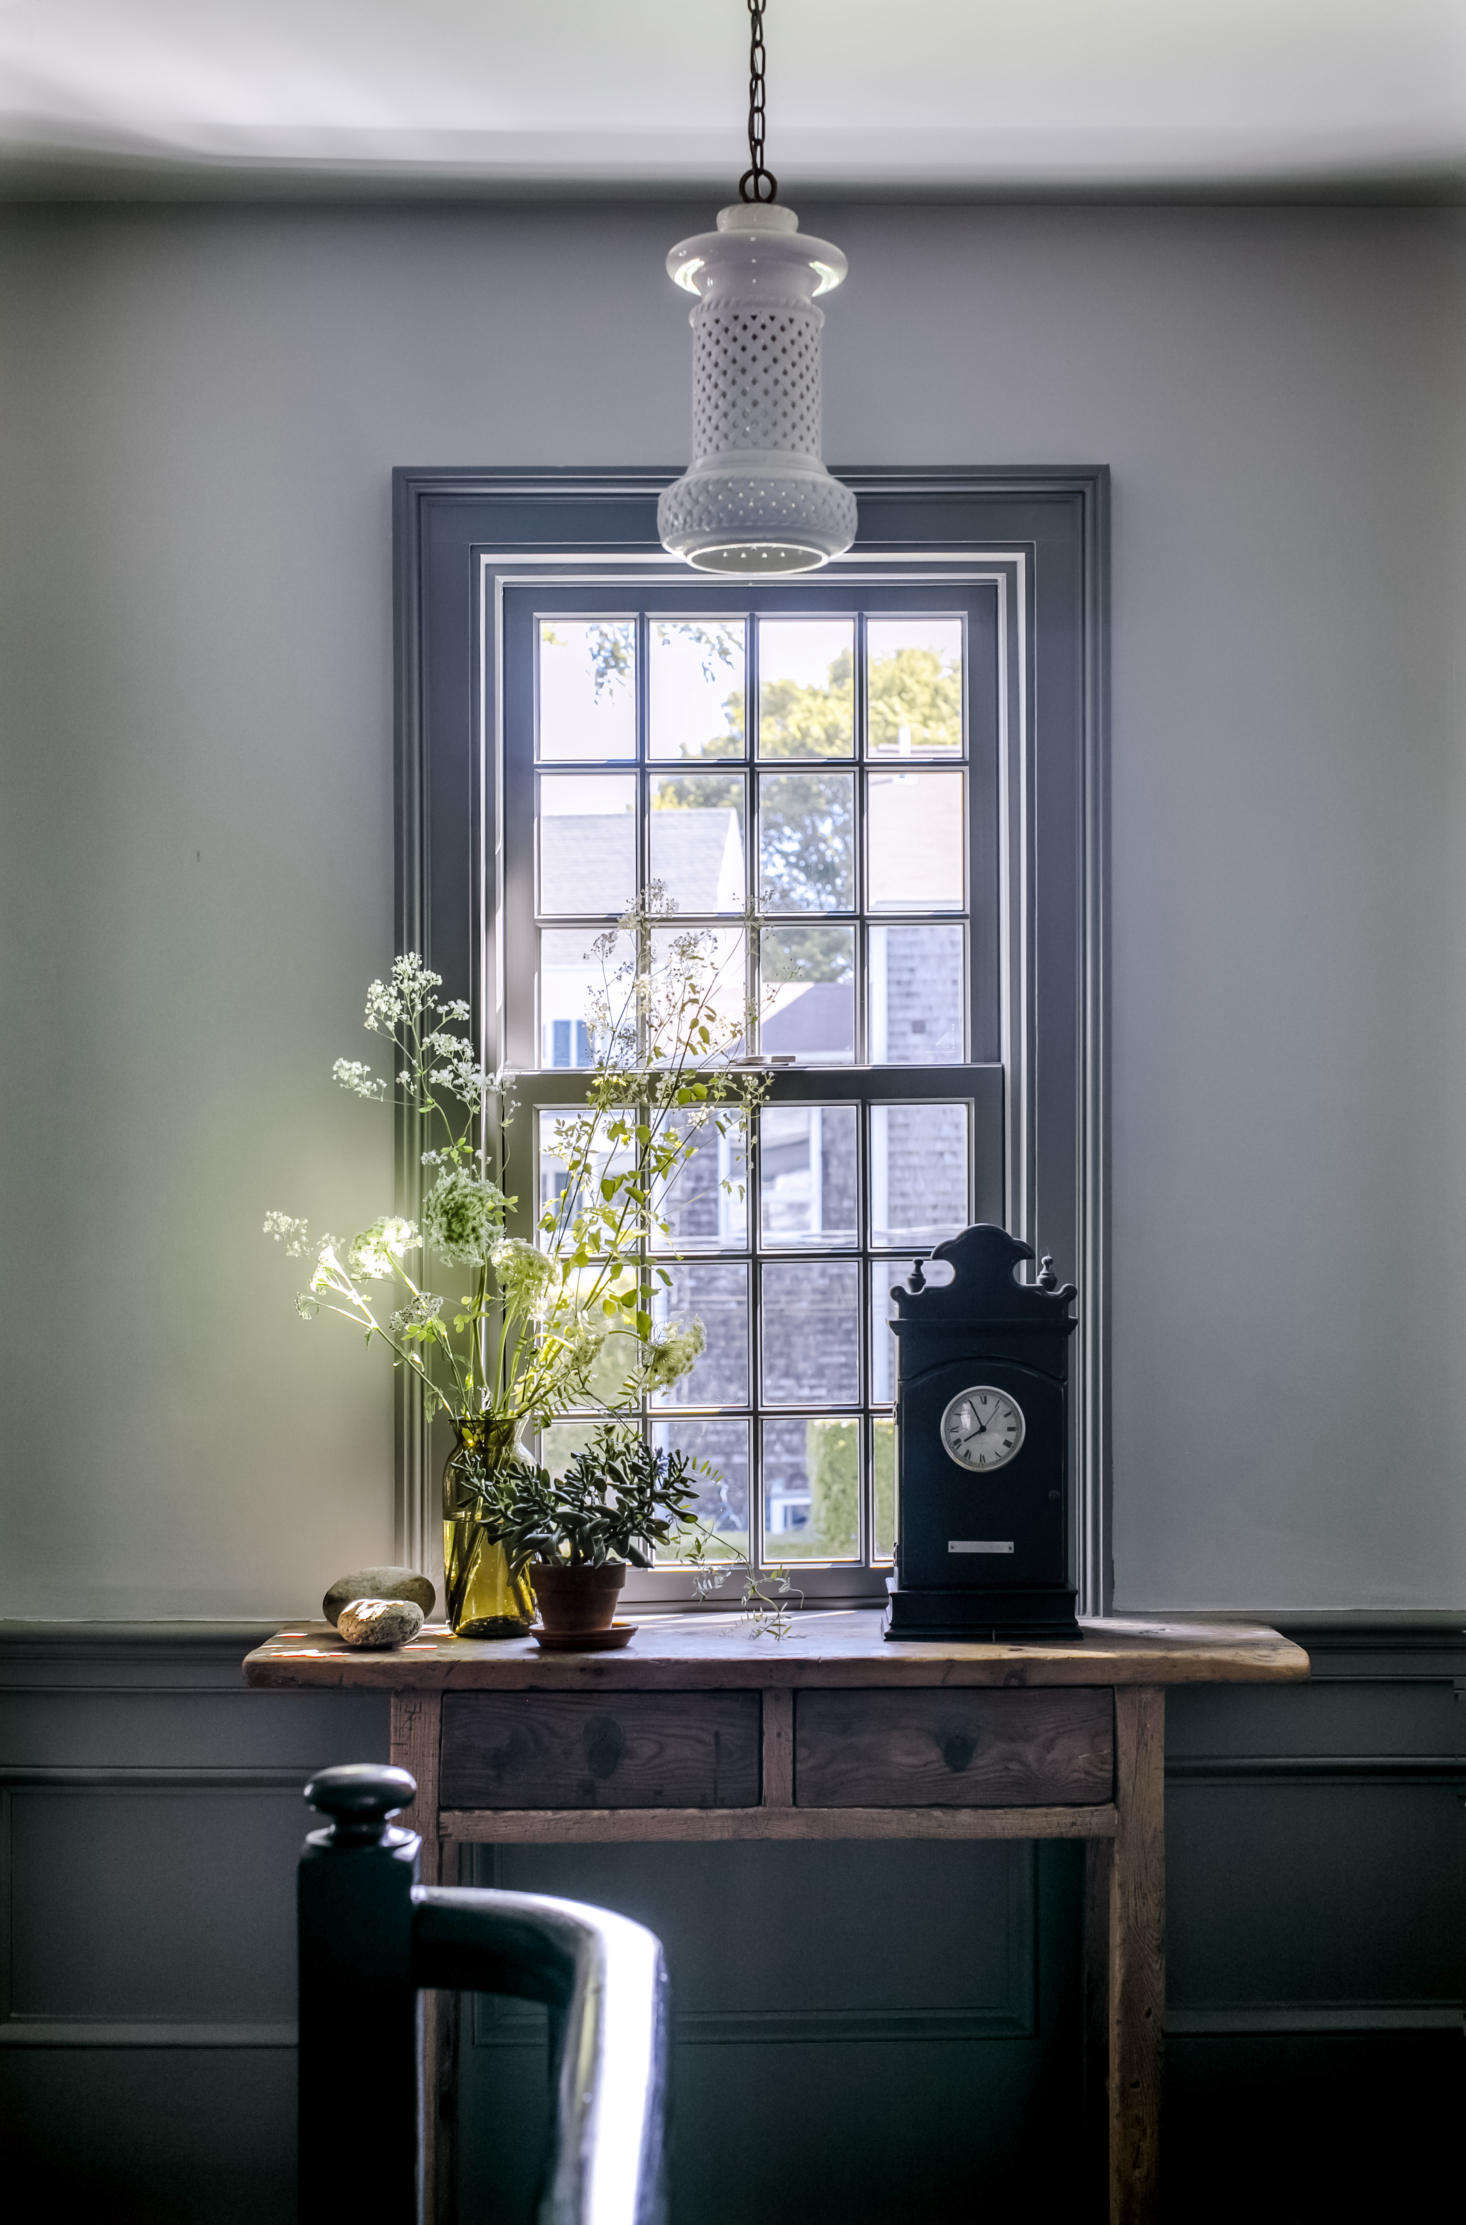 The glass vase is from John Derian&#8